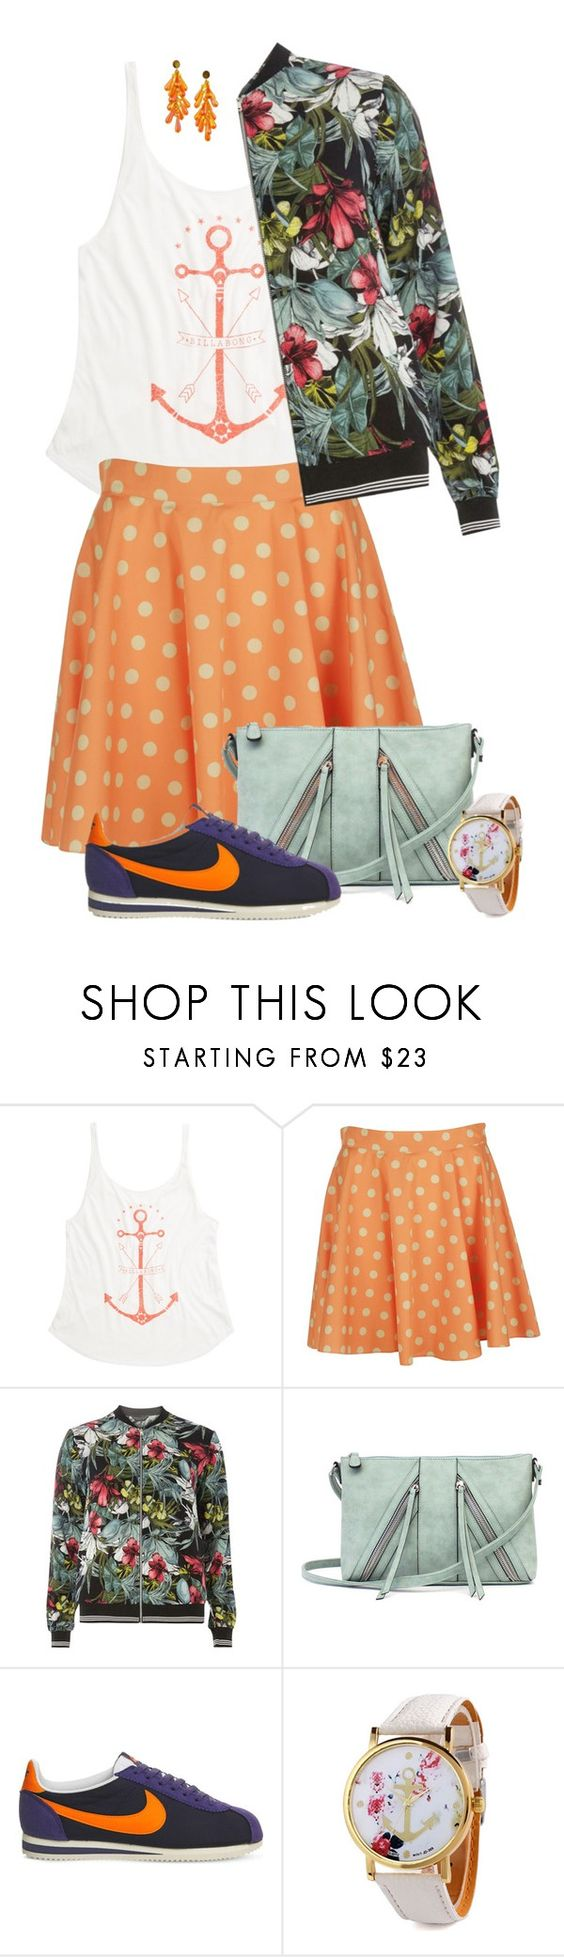 """""""Anchor my Heart"""" by feelgood35 ❤ liked on Polyvore featuring Billabong, Jeremy Scott, Dorothy Perkins, A.N.A and NIKE"""